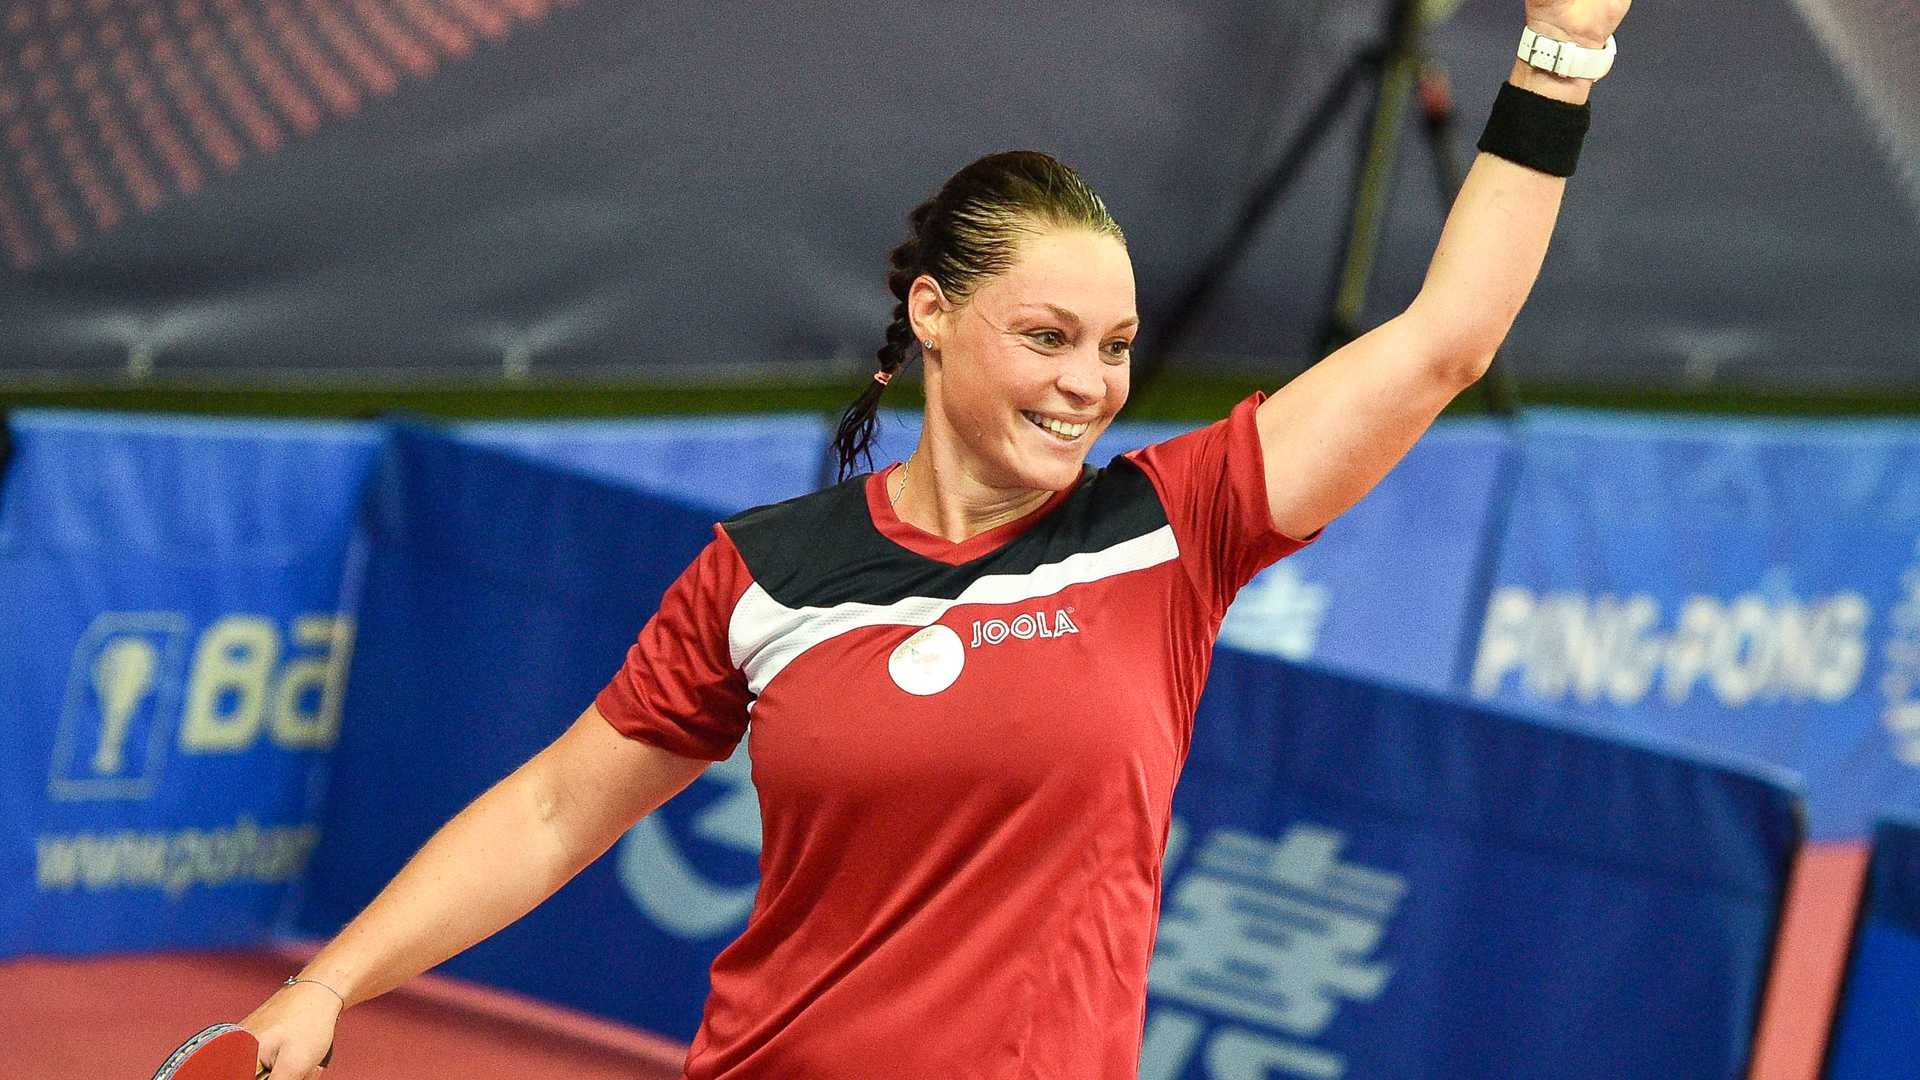 Home player Dana Cechova is through to the third preliminary round in the women's singles event ©ITTF/Lukas Kabon